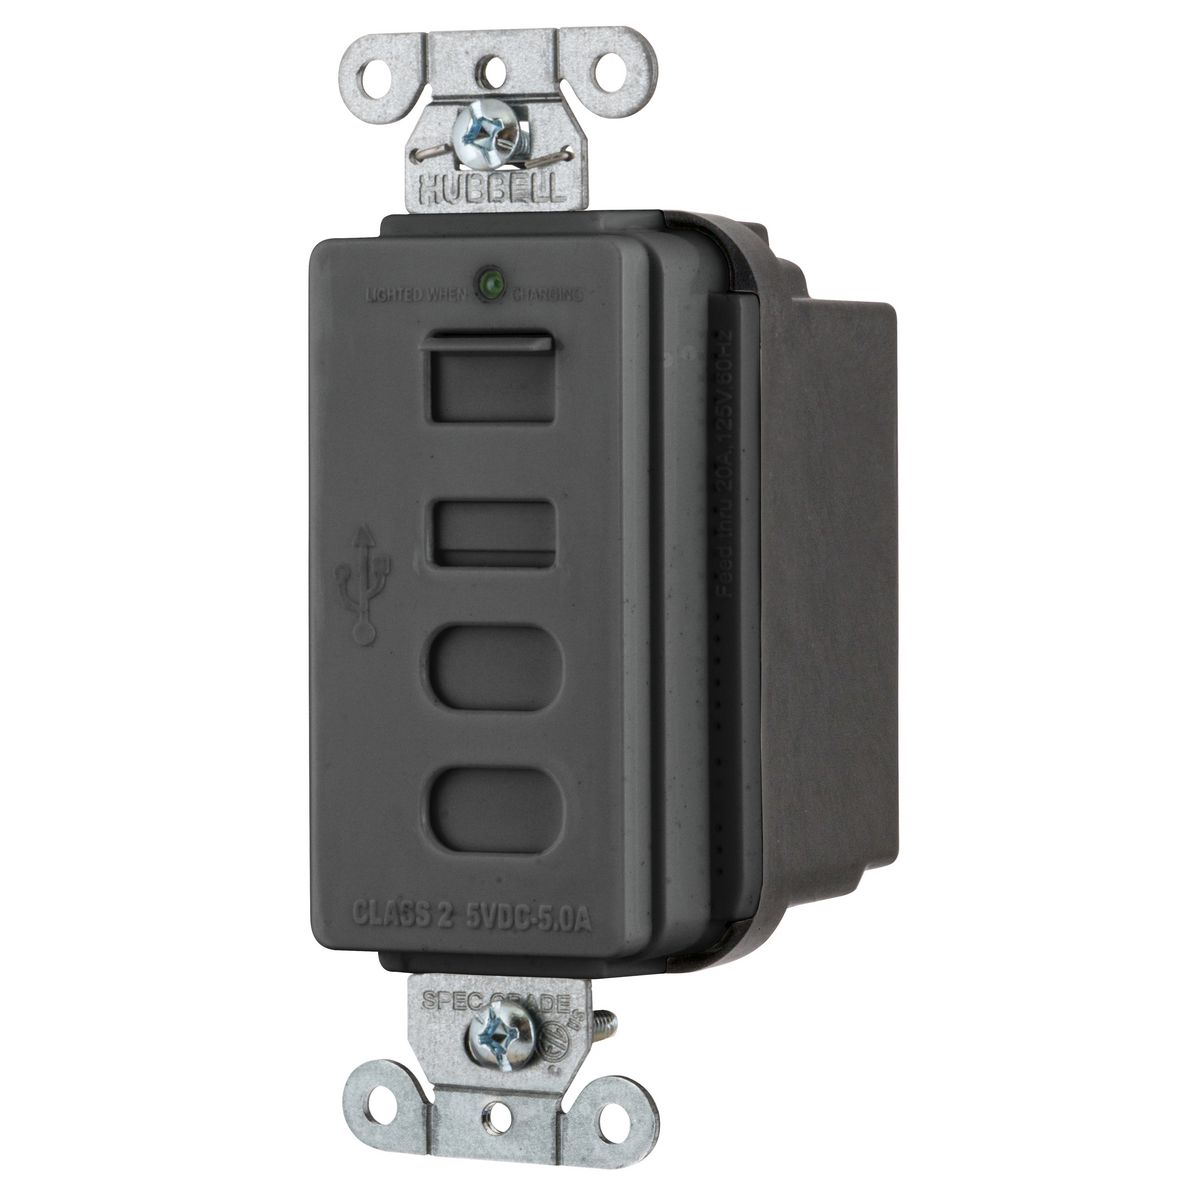 Hubbell USB4ACBK Receptacle and USB Charger